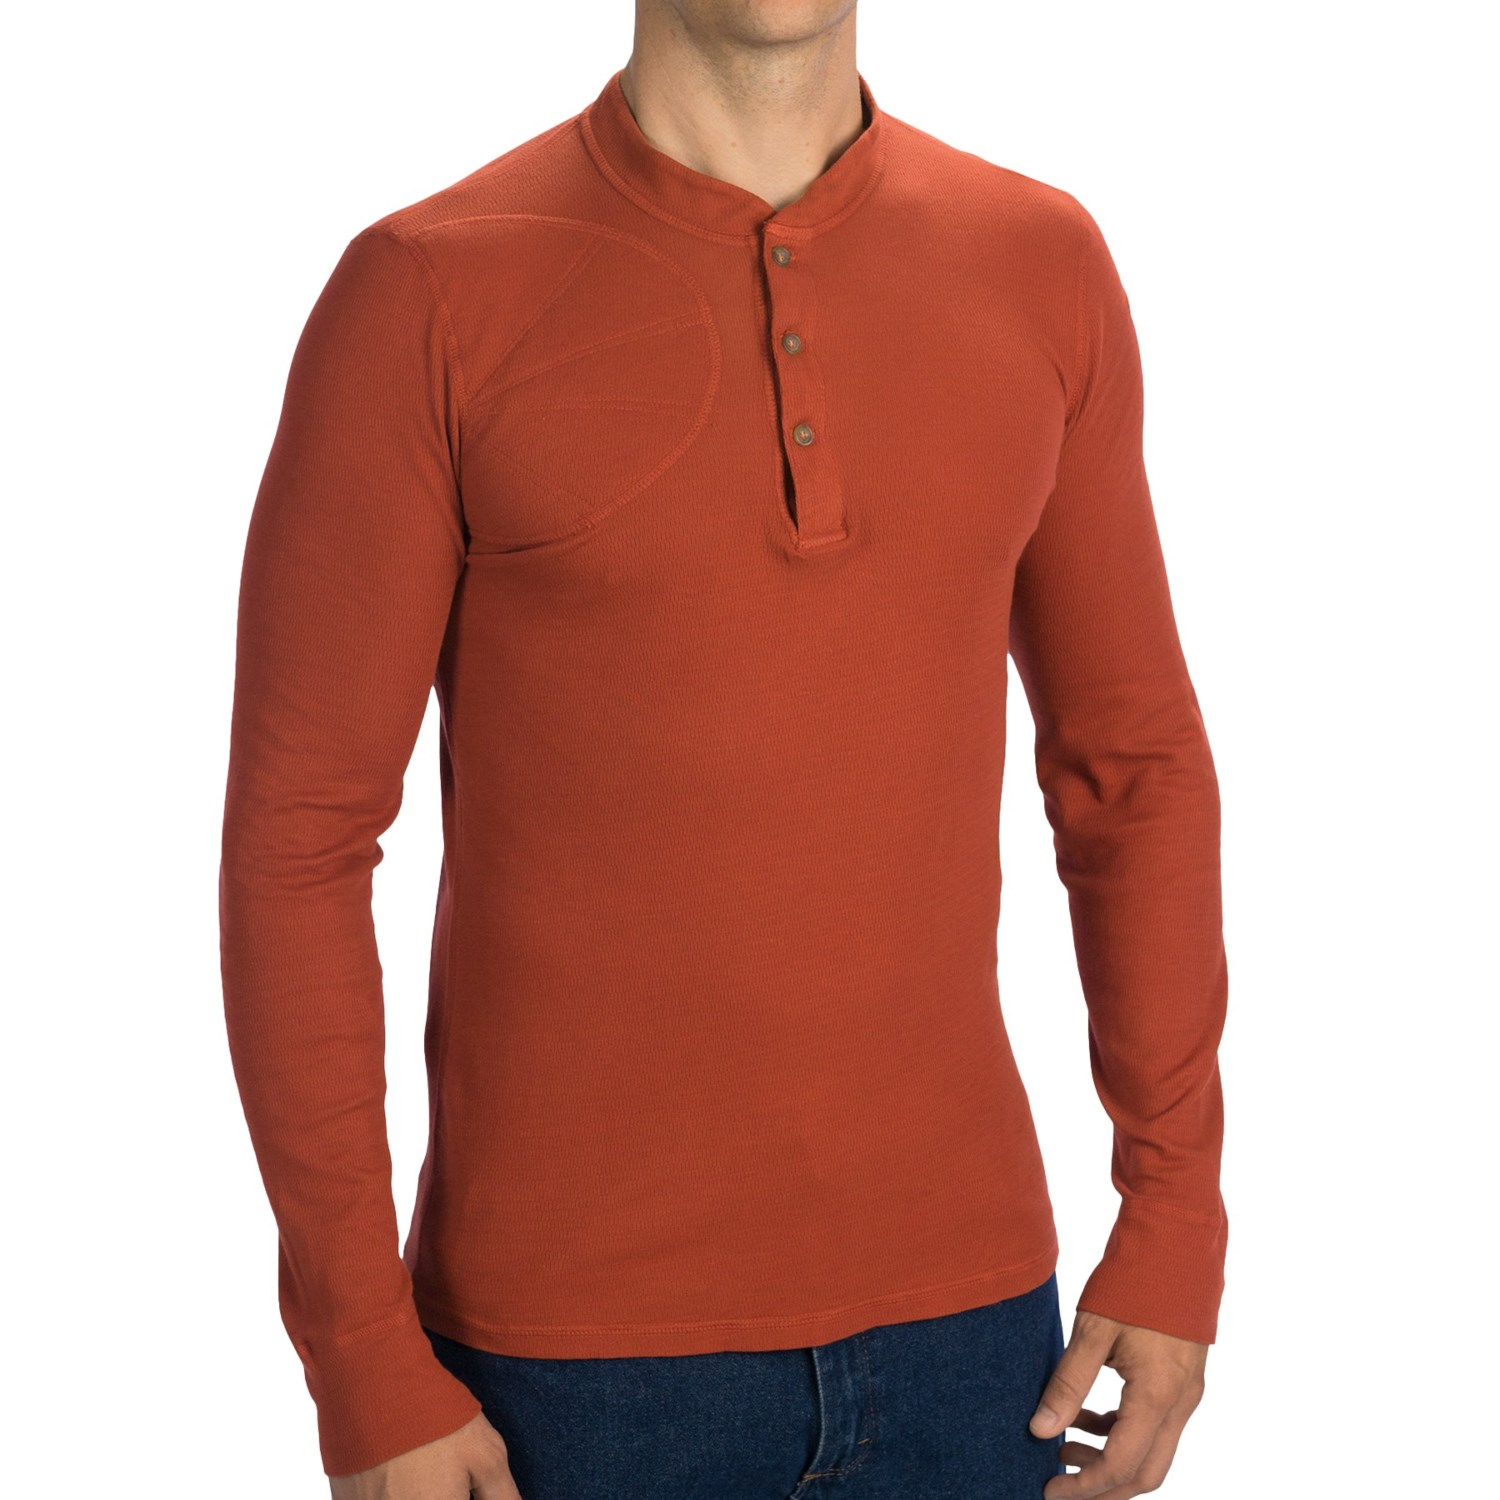 Find great deals on eBay for Mens Thermal Shirts in Casual Shirts for Different Occasions. Shop with confidence.